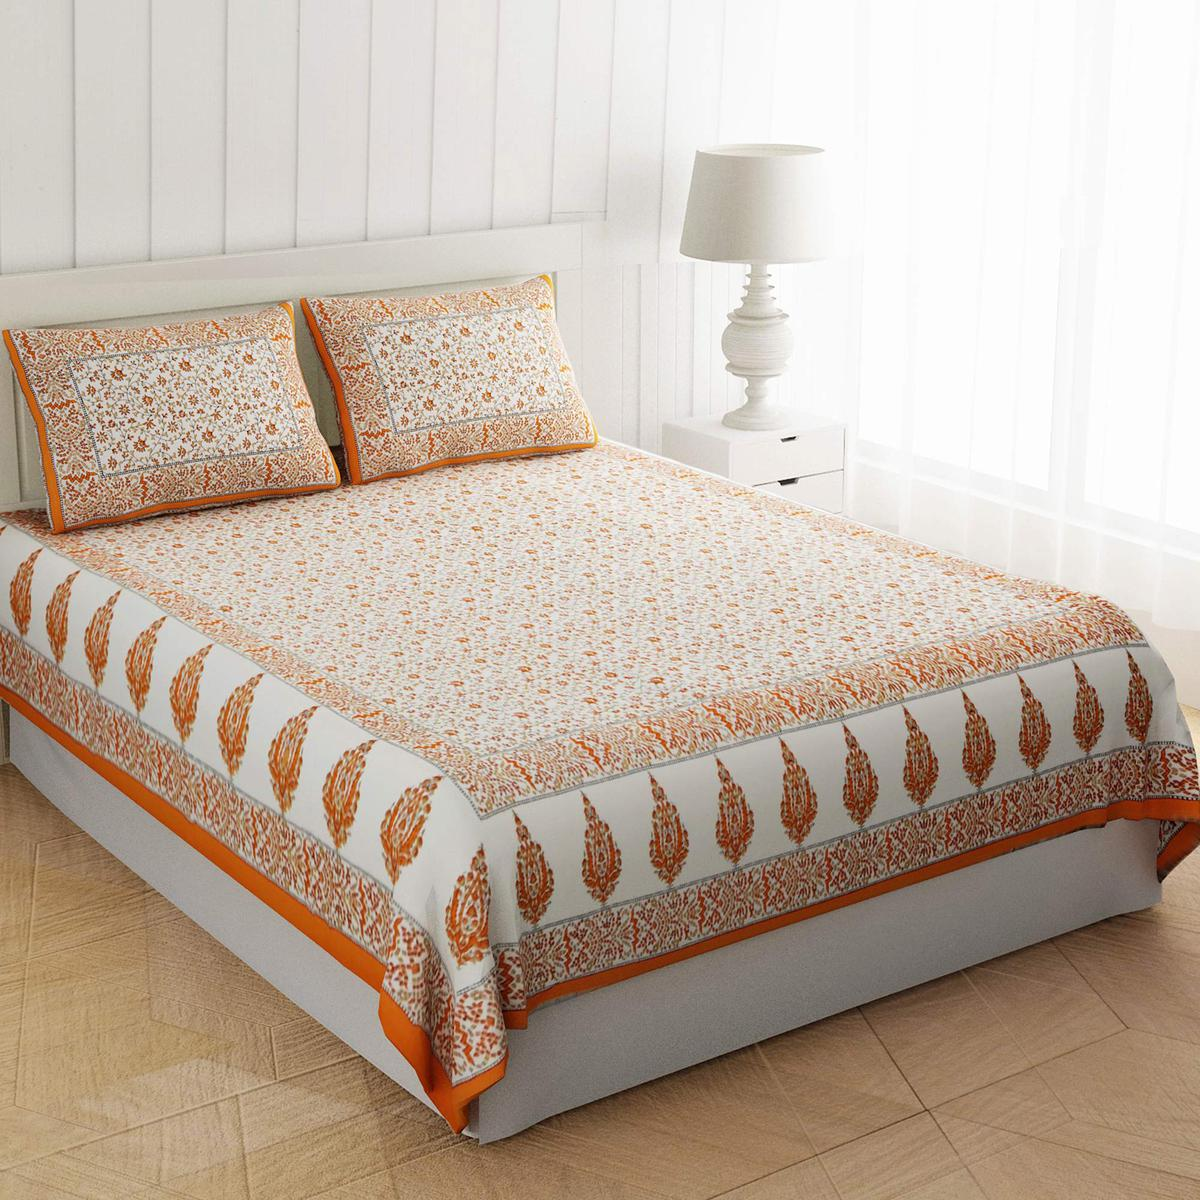 Dazzling Orange Colored Flowery Motif Print Cotton Double Bedsheet With Pillow Cover